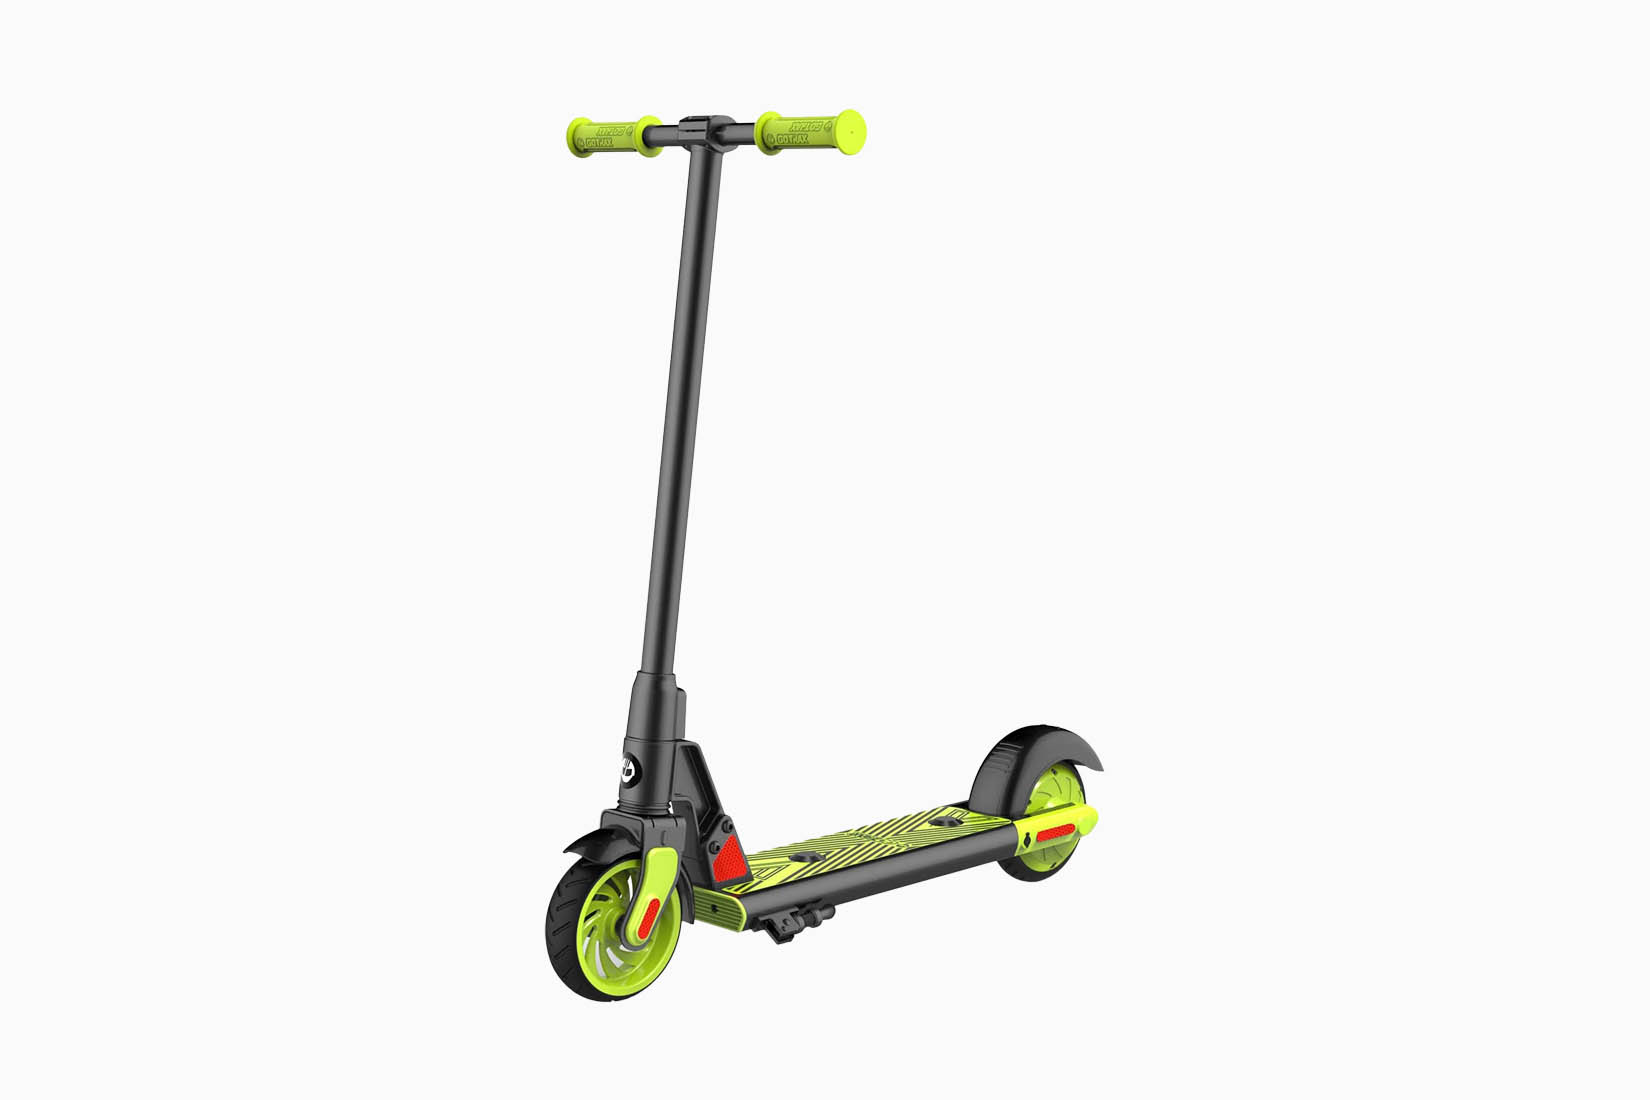 best electric scooter gotrax gks review - Luxe Digital